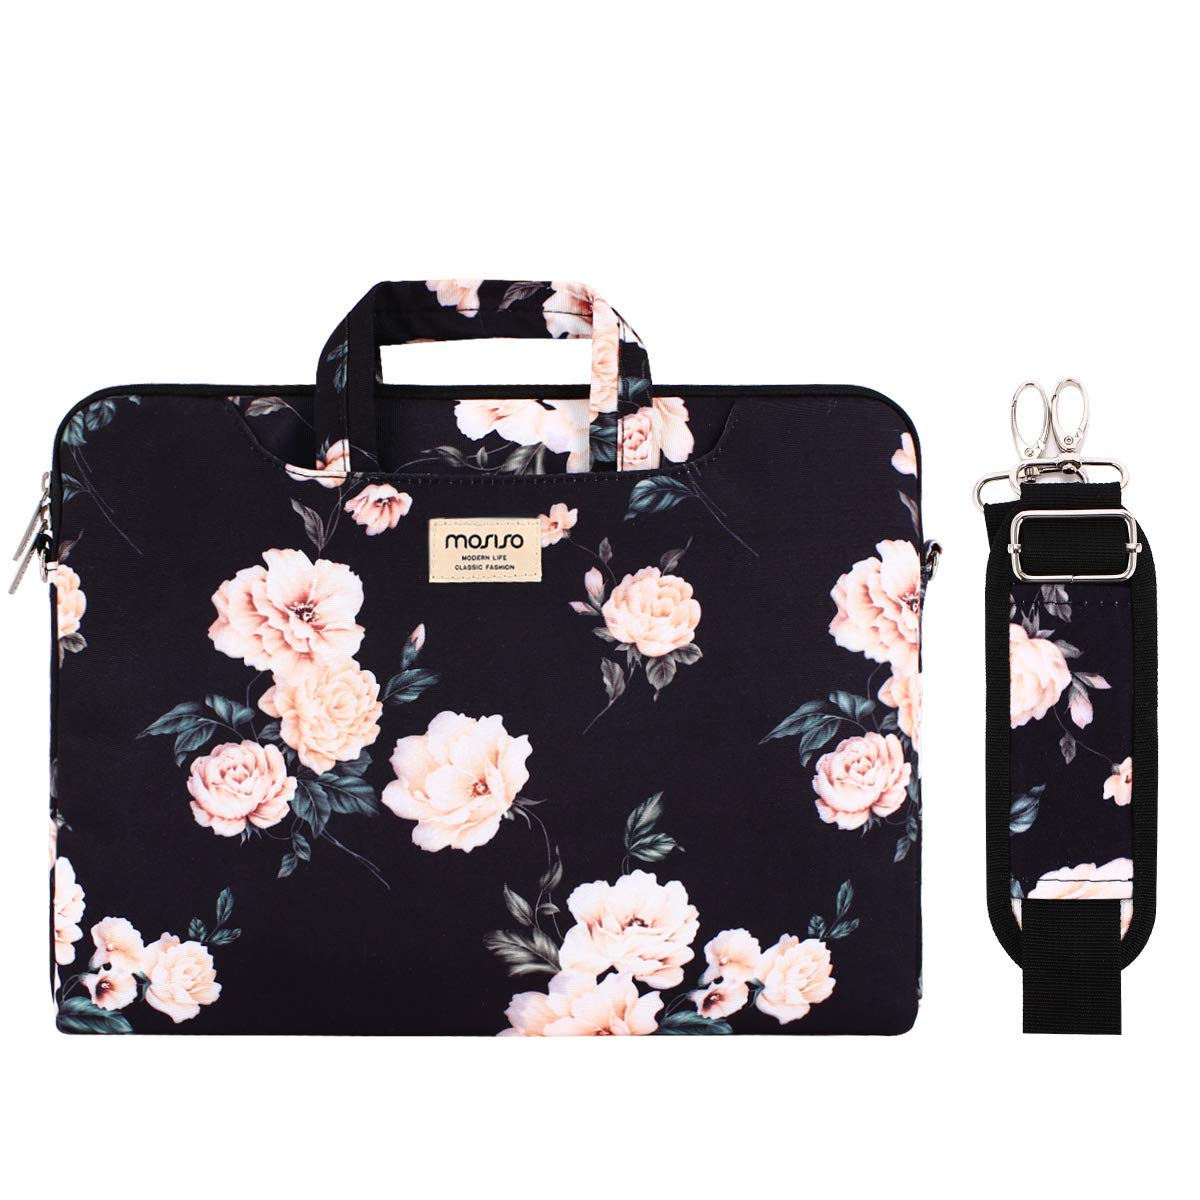 MOSISO Laptop Shoulder Bag Compatible with 14-15.6 inch 2016-2019 MacBook Pro Touch Bar A1990 A1707, Chromebook Notebook,Canvas Pattern Briefcase Sleeve with Back Trolley Belt, Apricot Peony by MOSISO